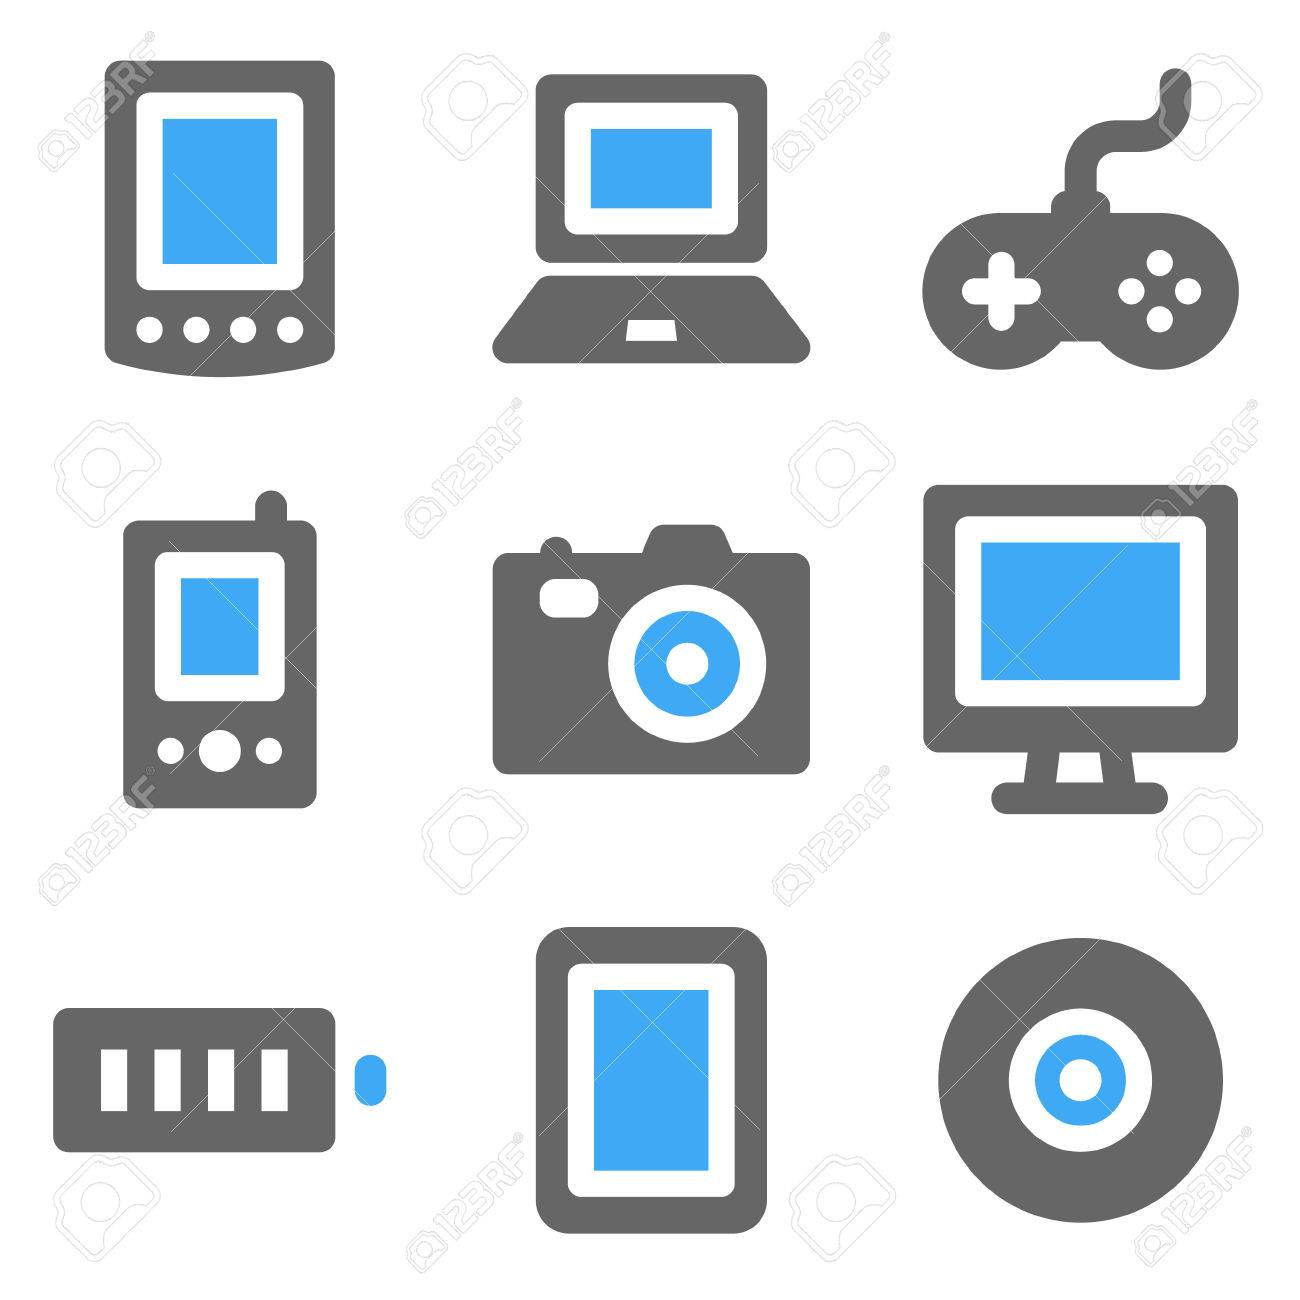 Electronics web icons, blue and grey solid icons Stock Vector - 7935997